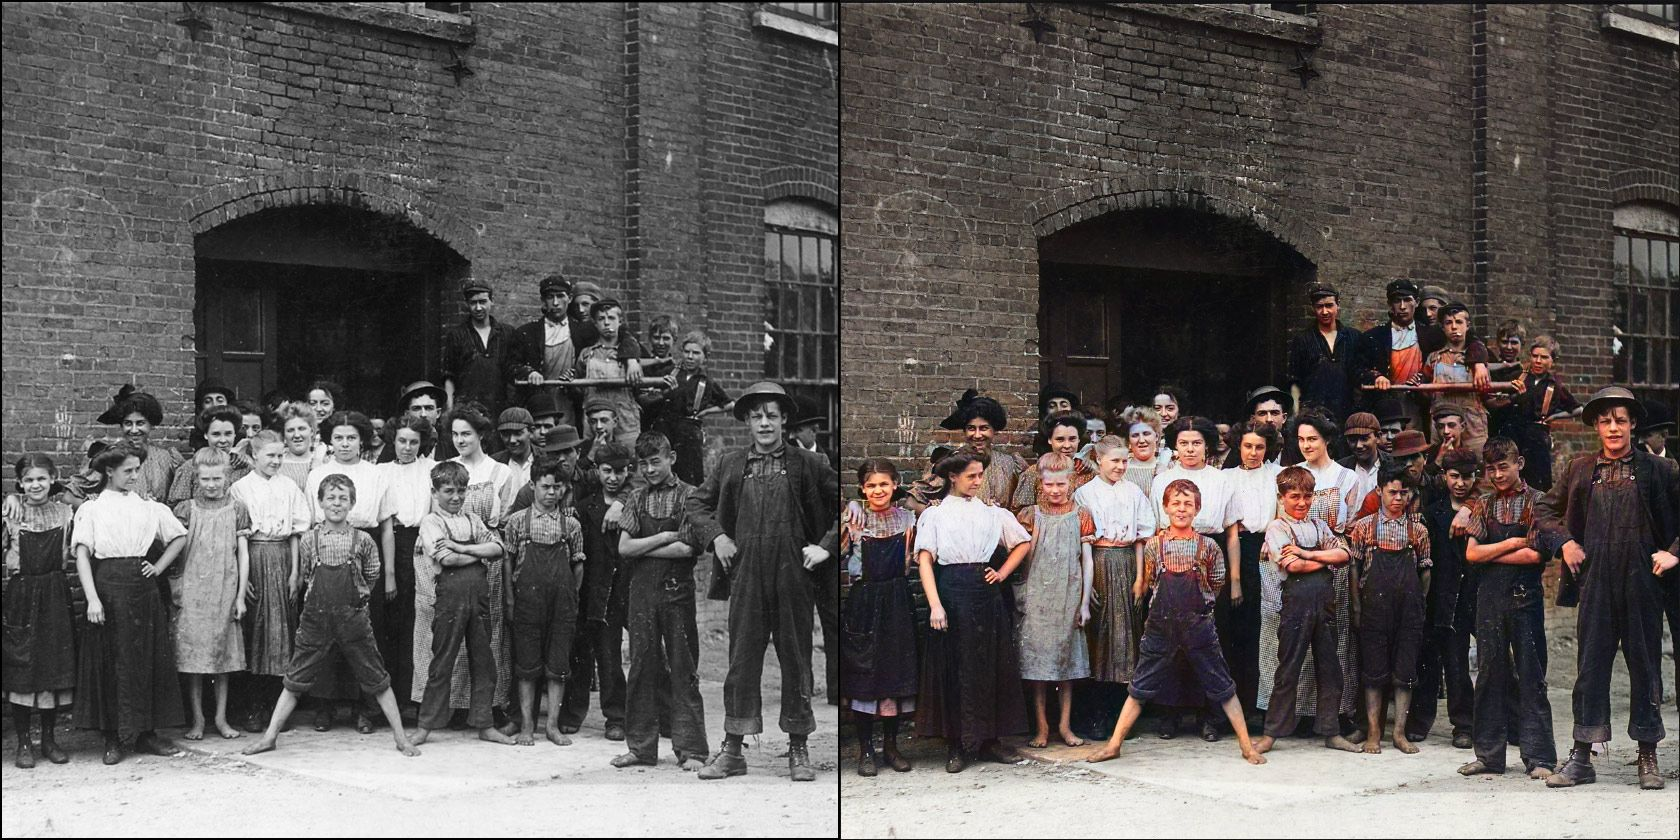 6 AI Tools That Add Color to Old Black and White Photos